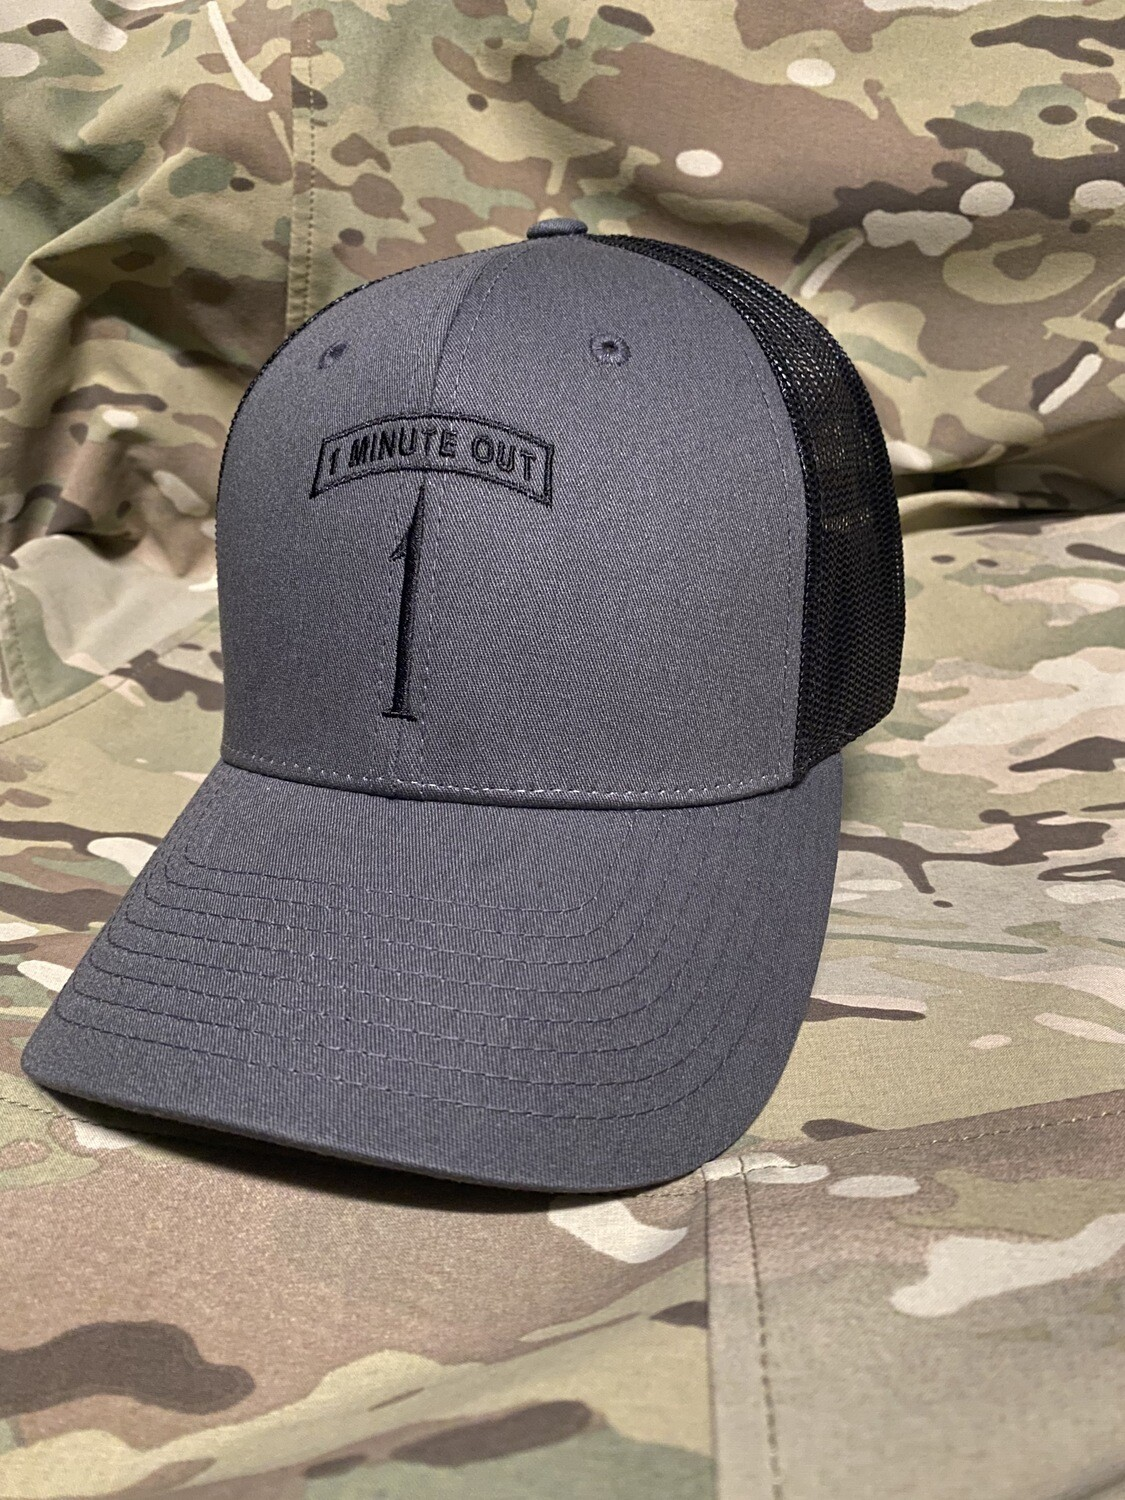 1 Minute Out Hat Charcoal/BLK 115